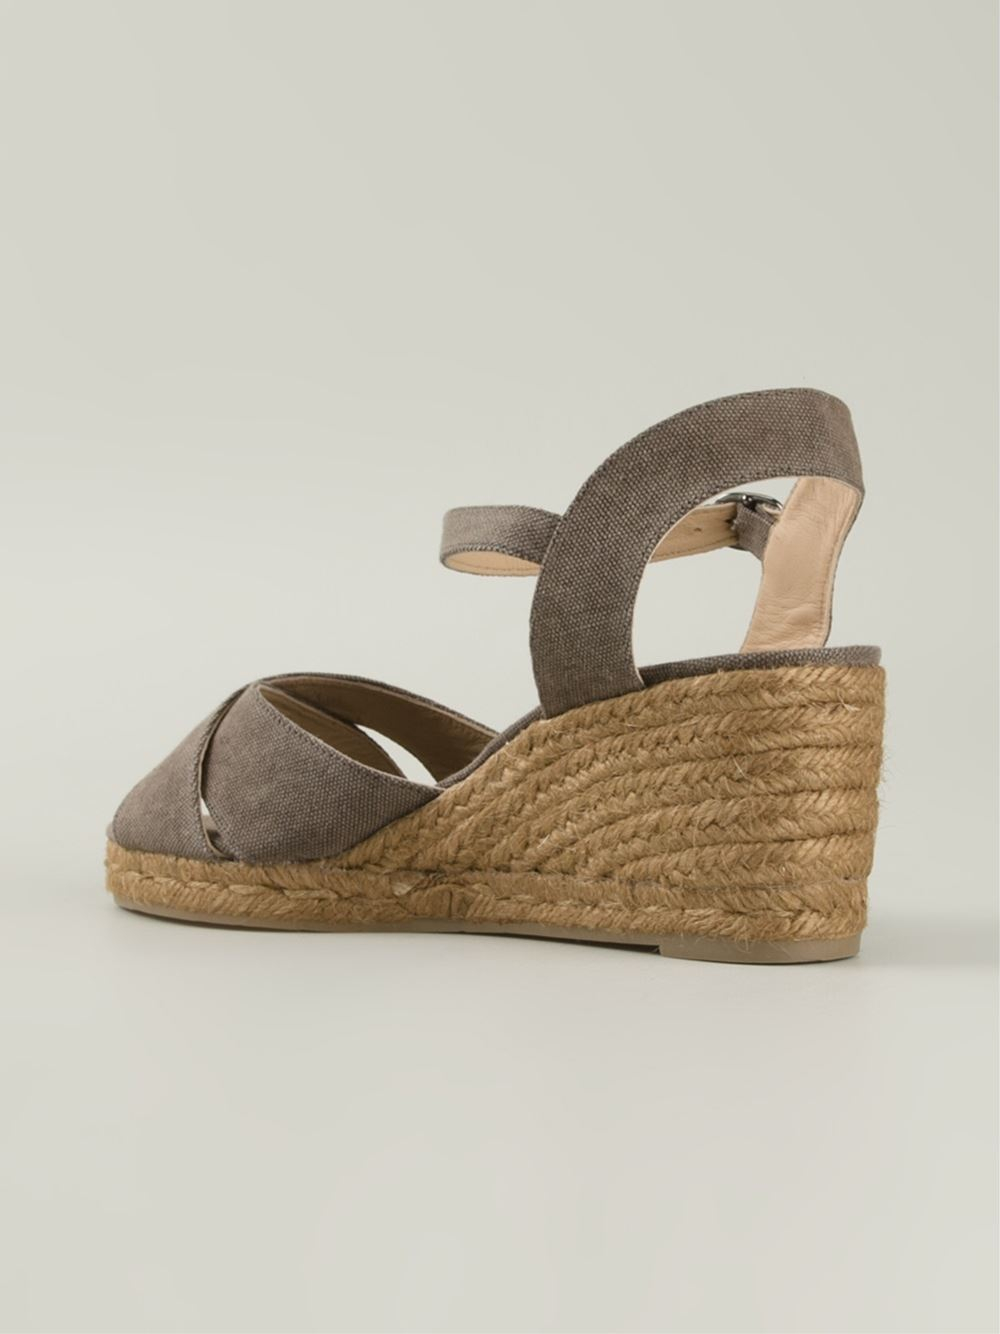 c38fb9834d2 Lyst - Castaner  Blaudell  Espadrille Wedge Sandals in Gray